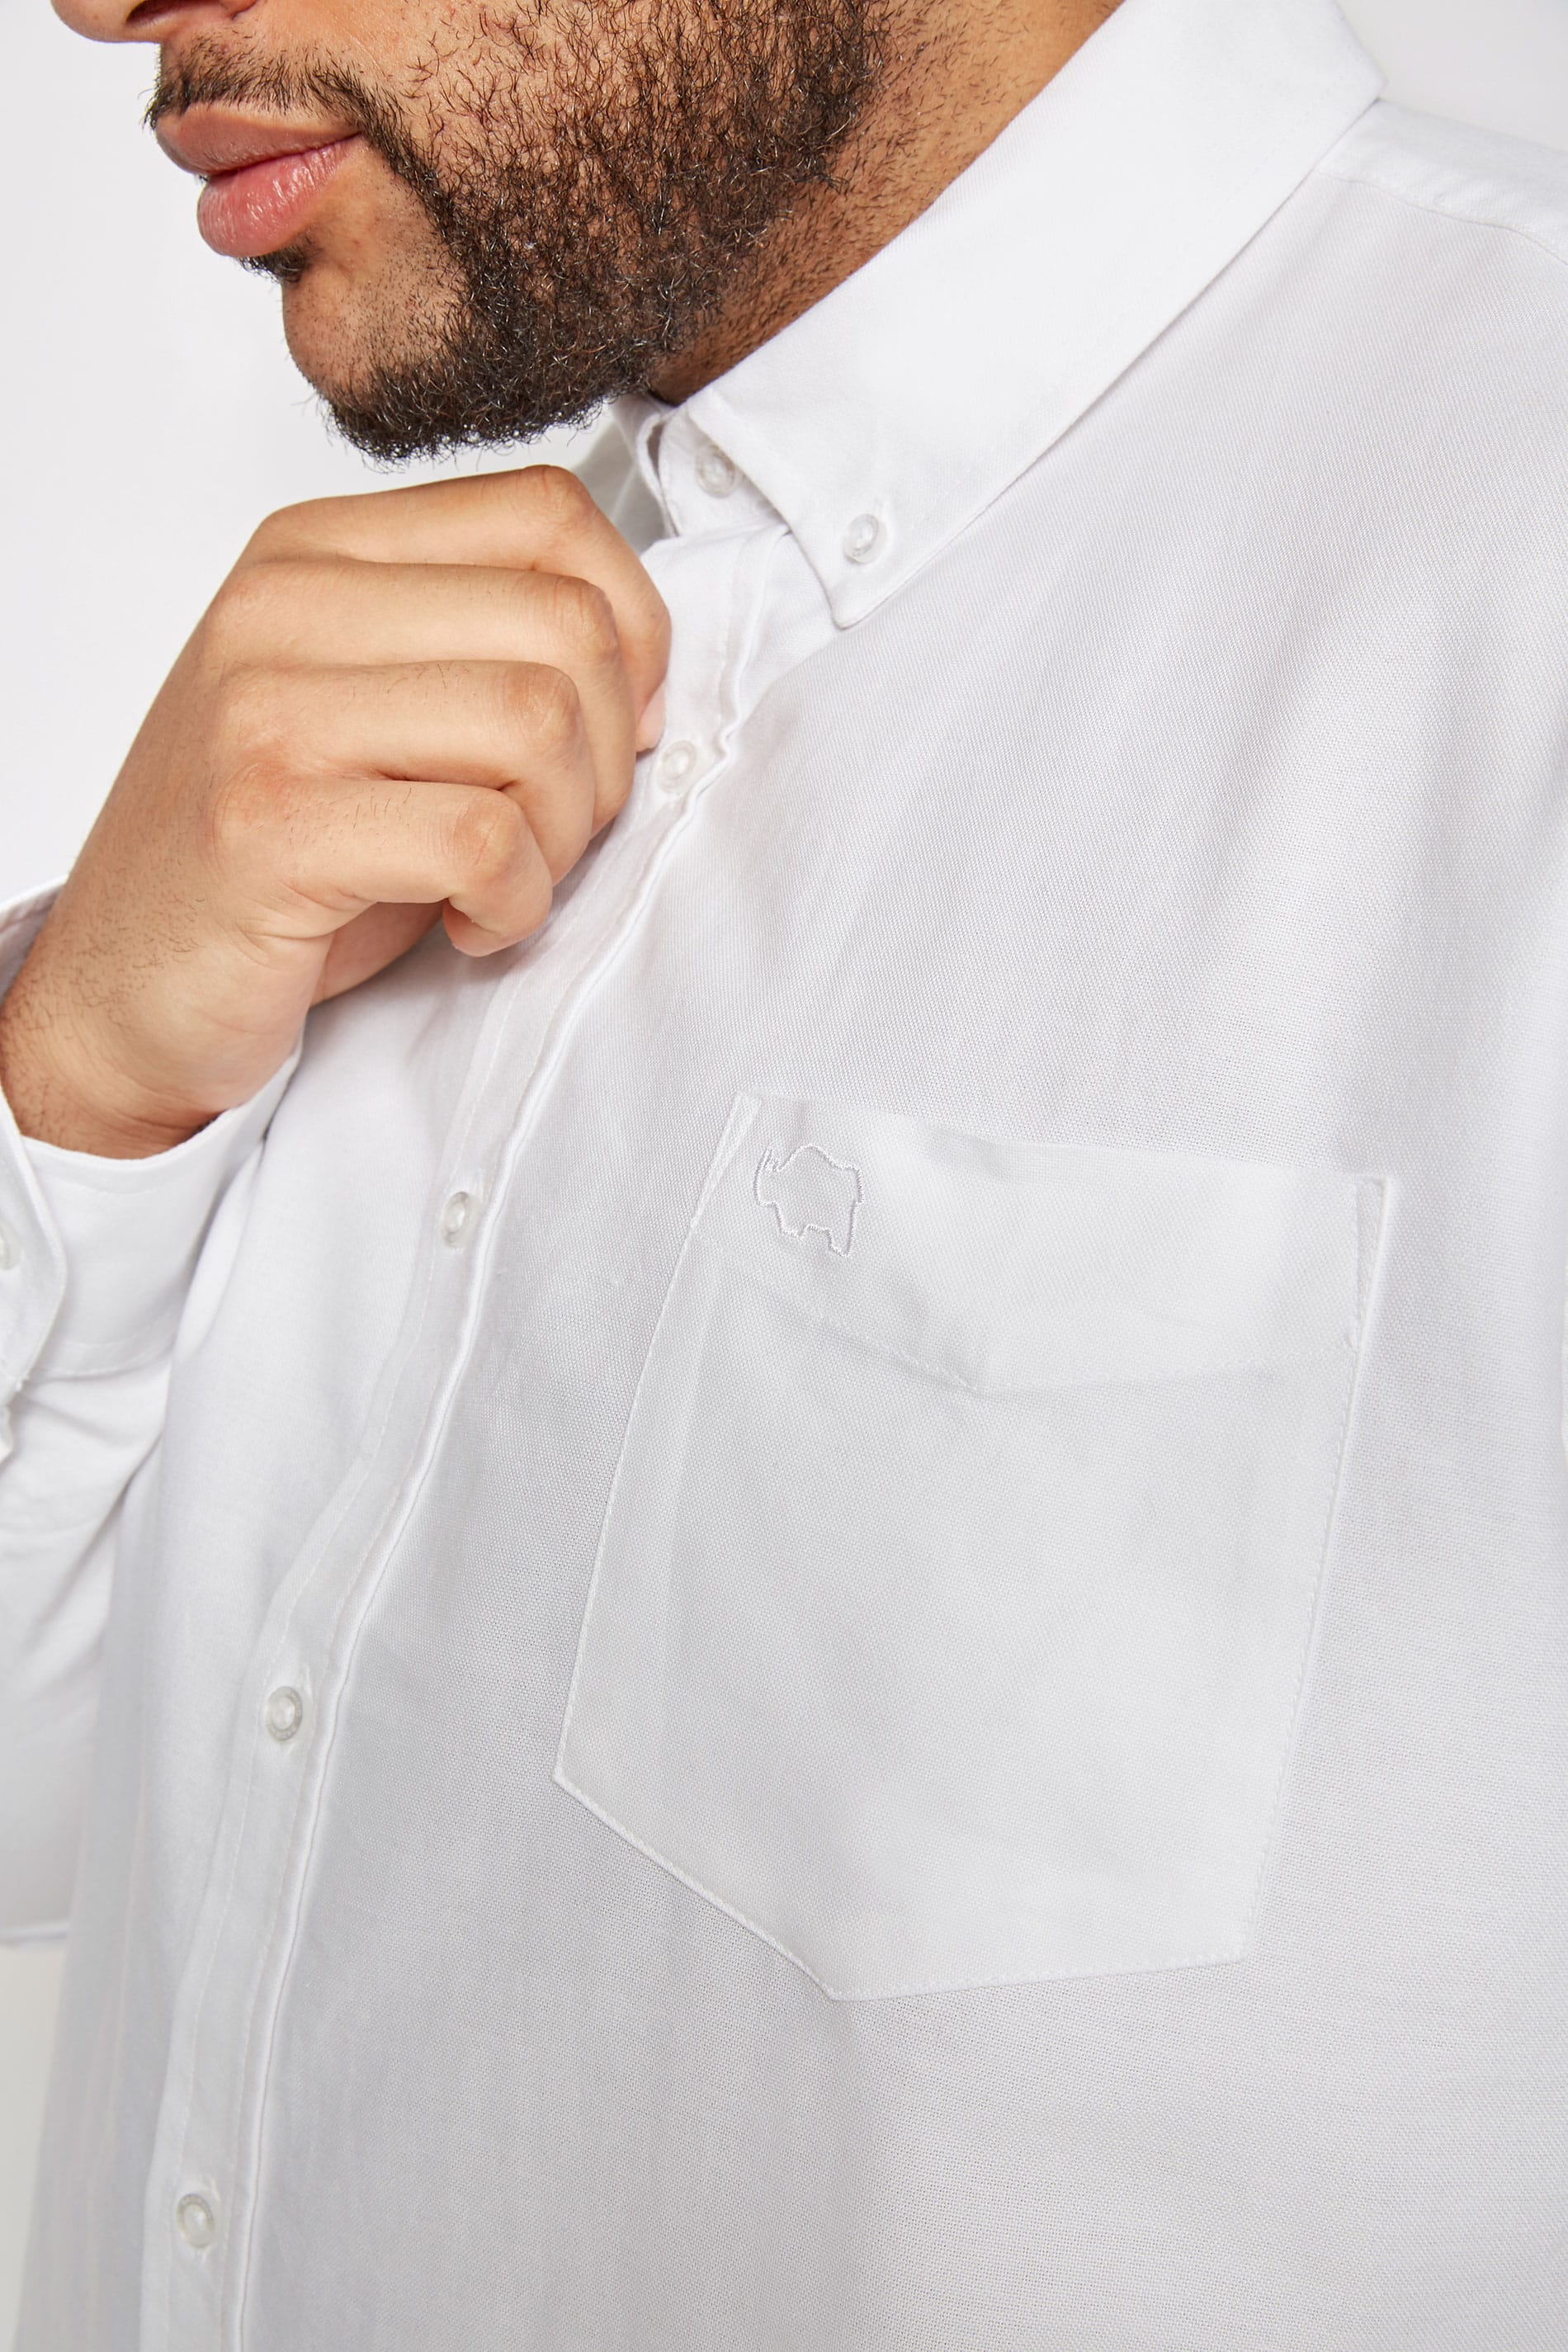 b1799de5719561 BadRhino White Cotton Long Sleeved Oxford Shirt Extra large sizes L ...